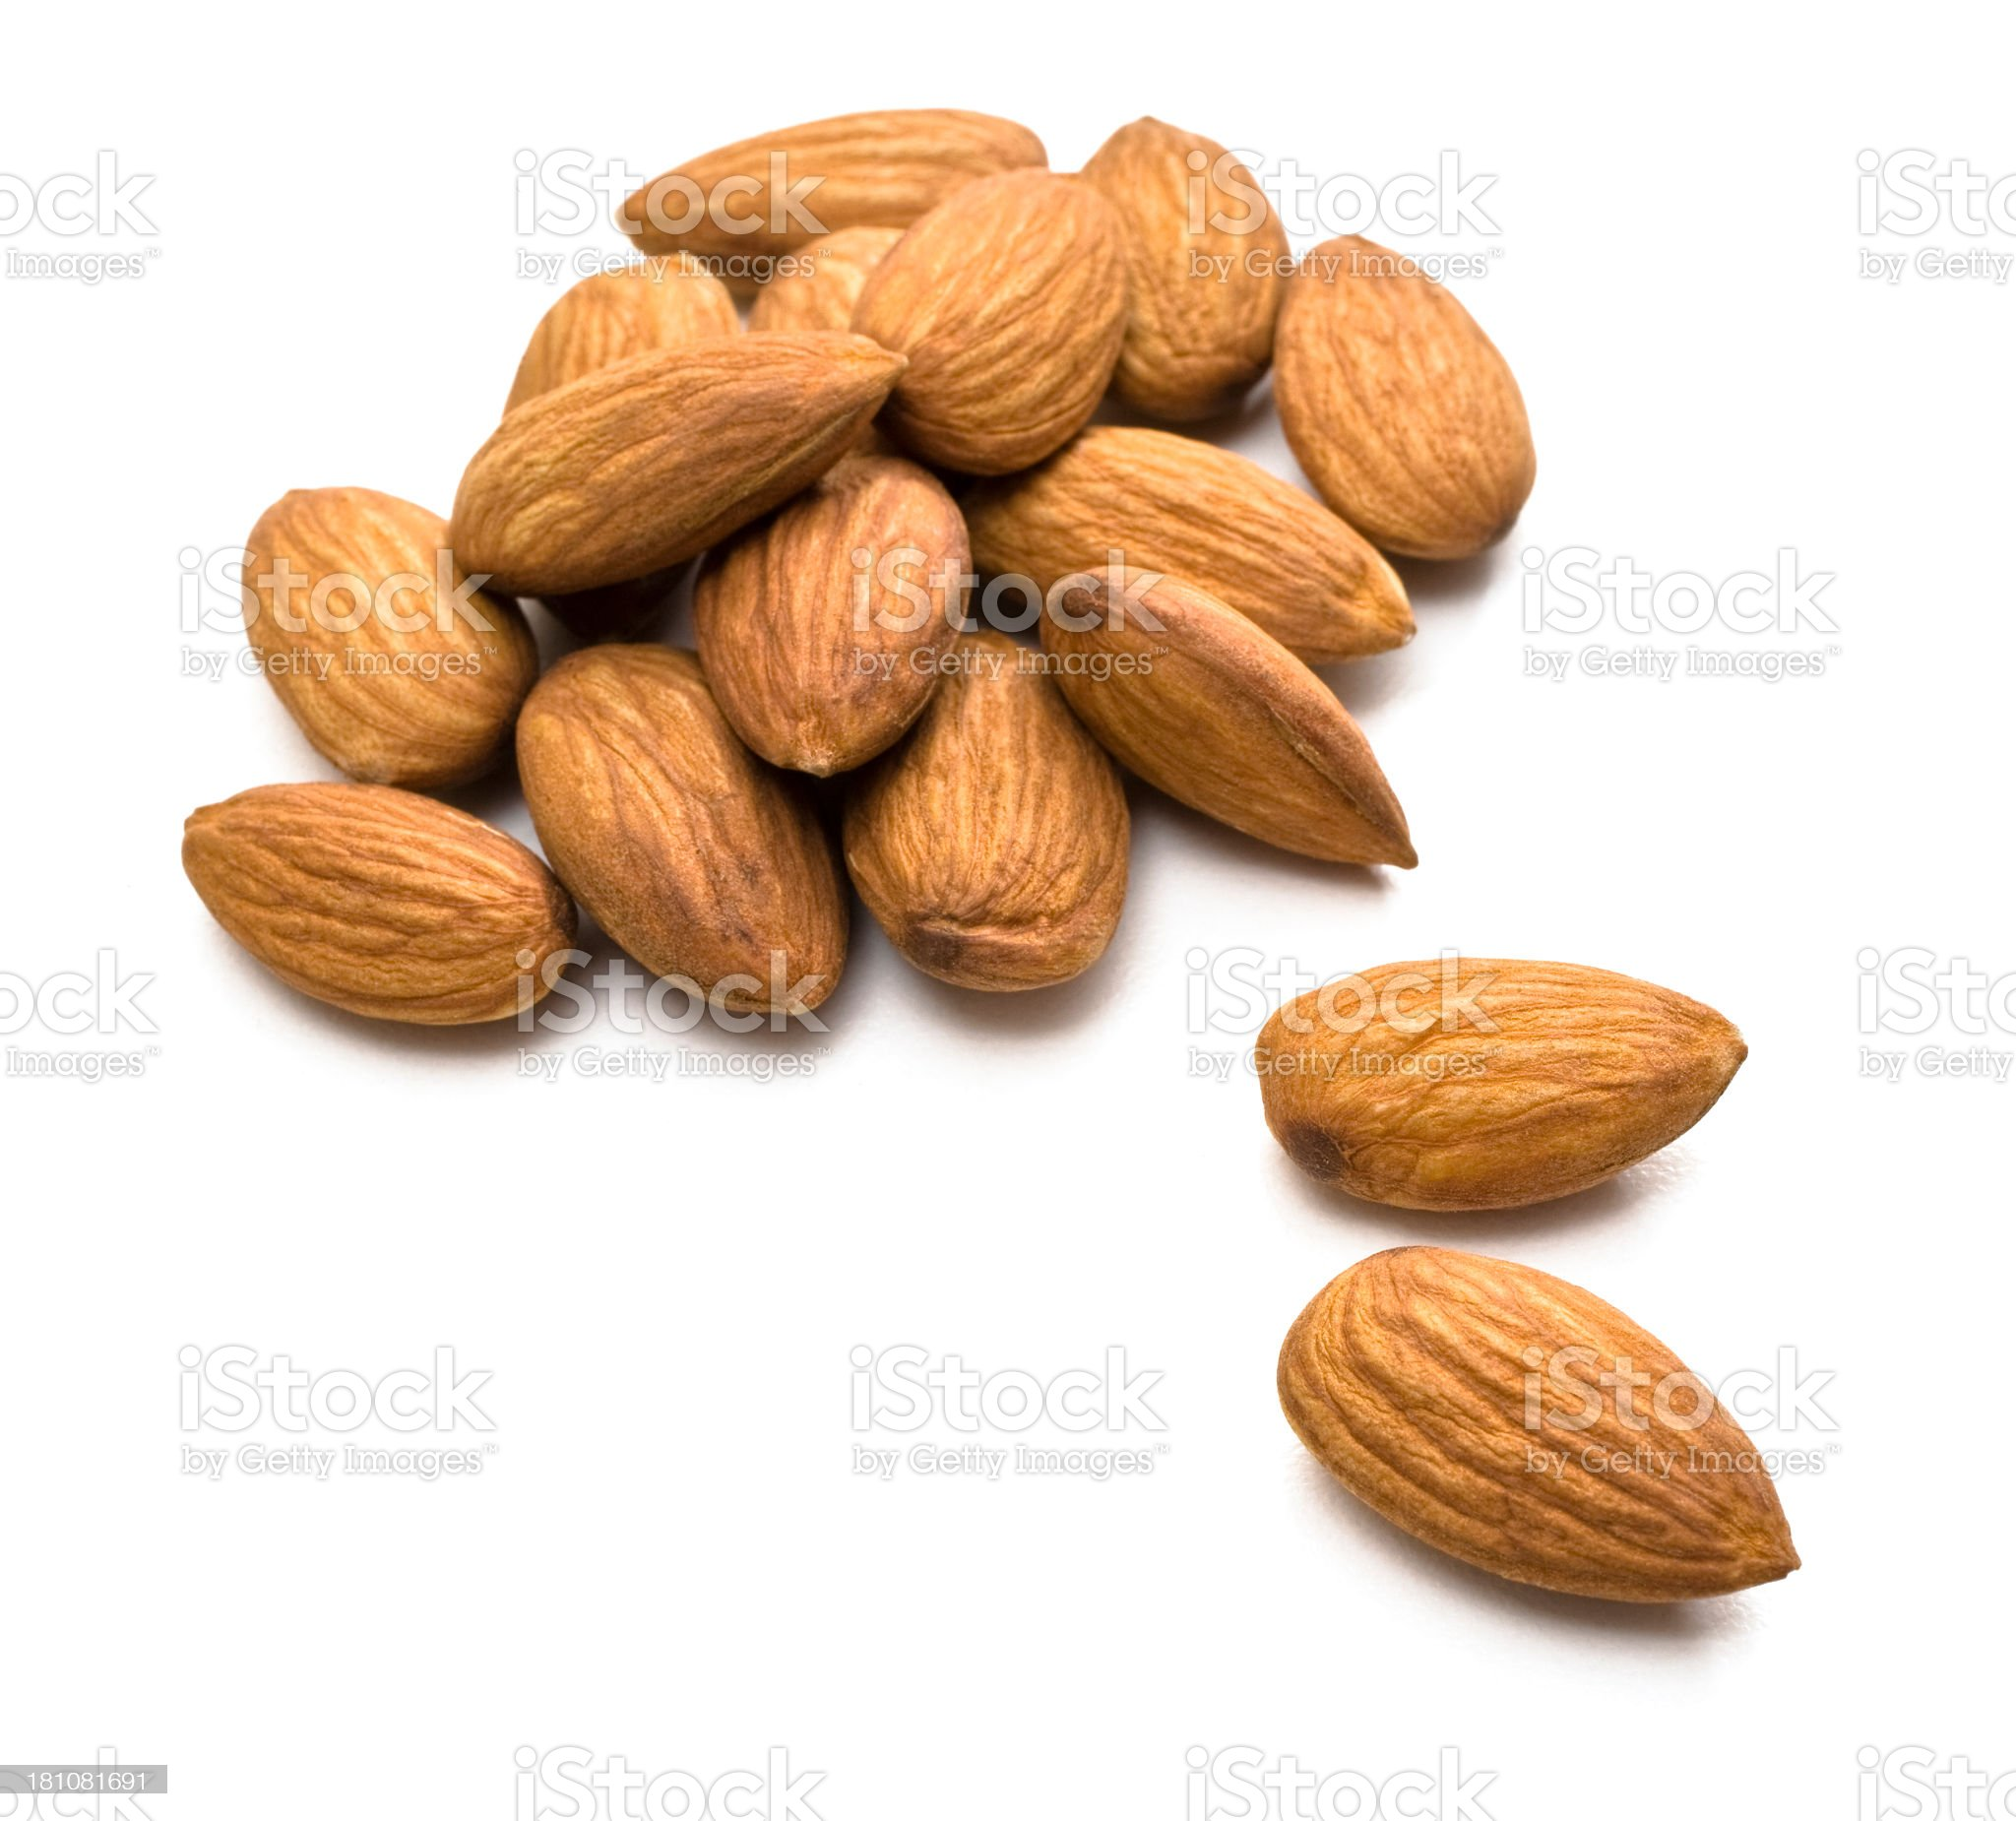 Handful of almonds on a white background royalty-free stock photo